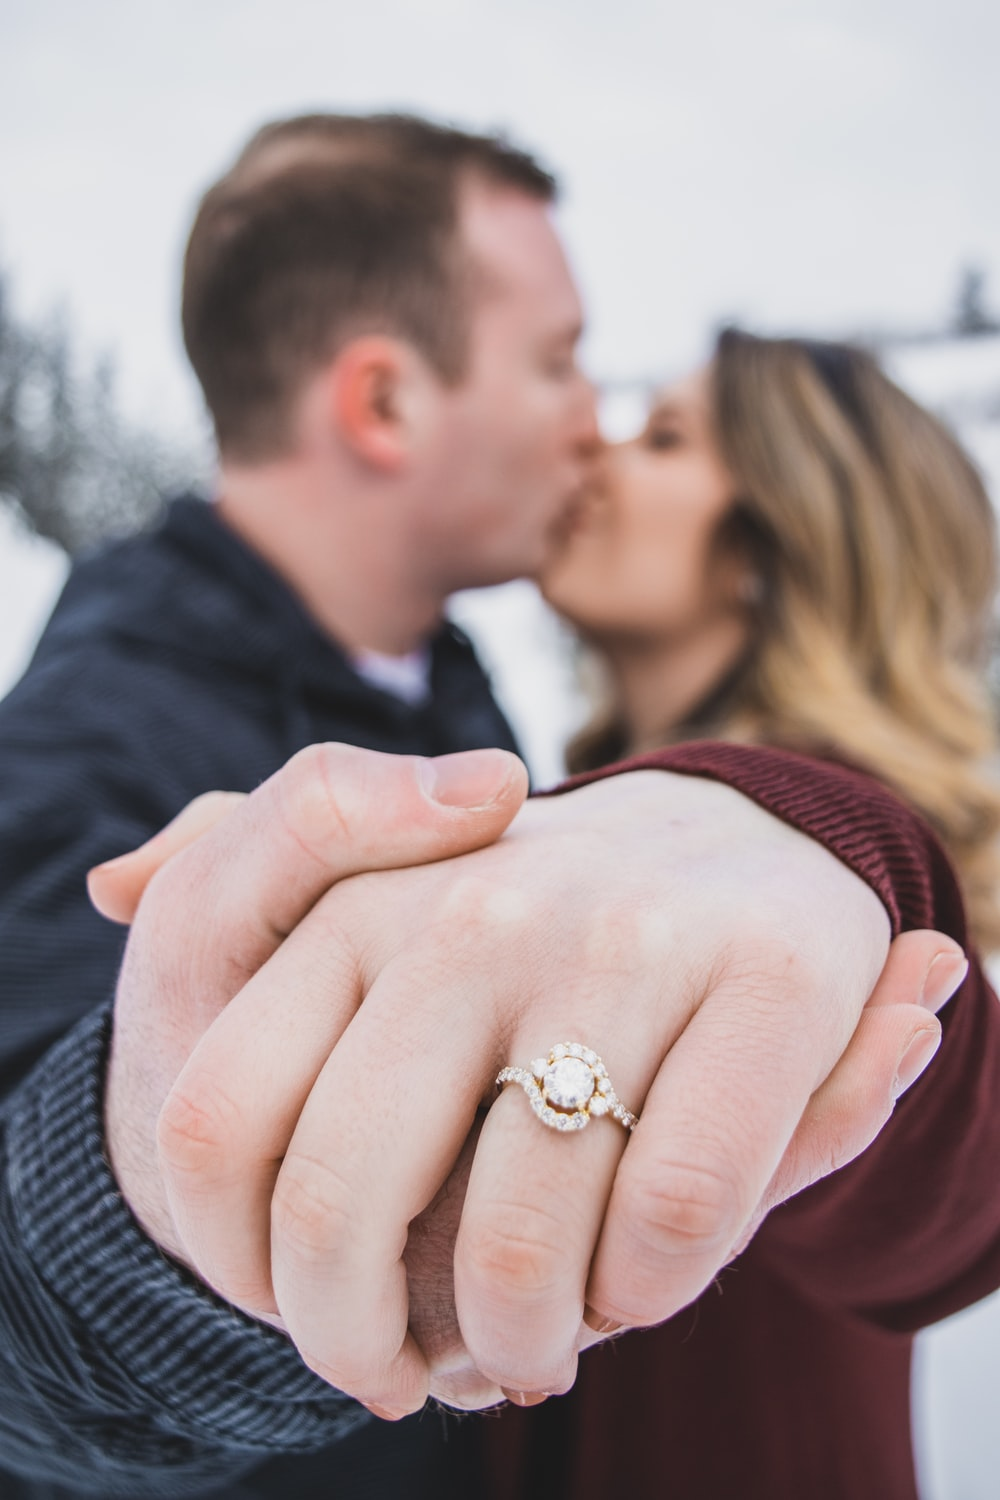 man kissing woman showing her ring